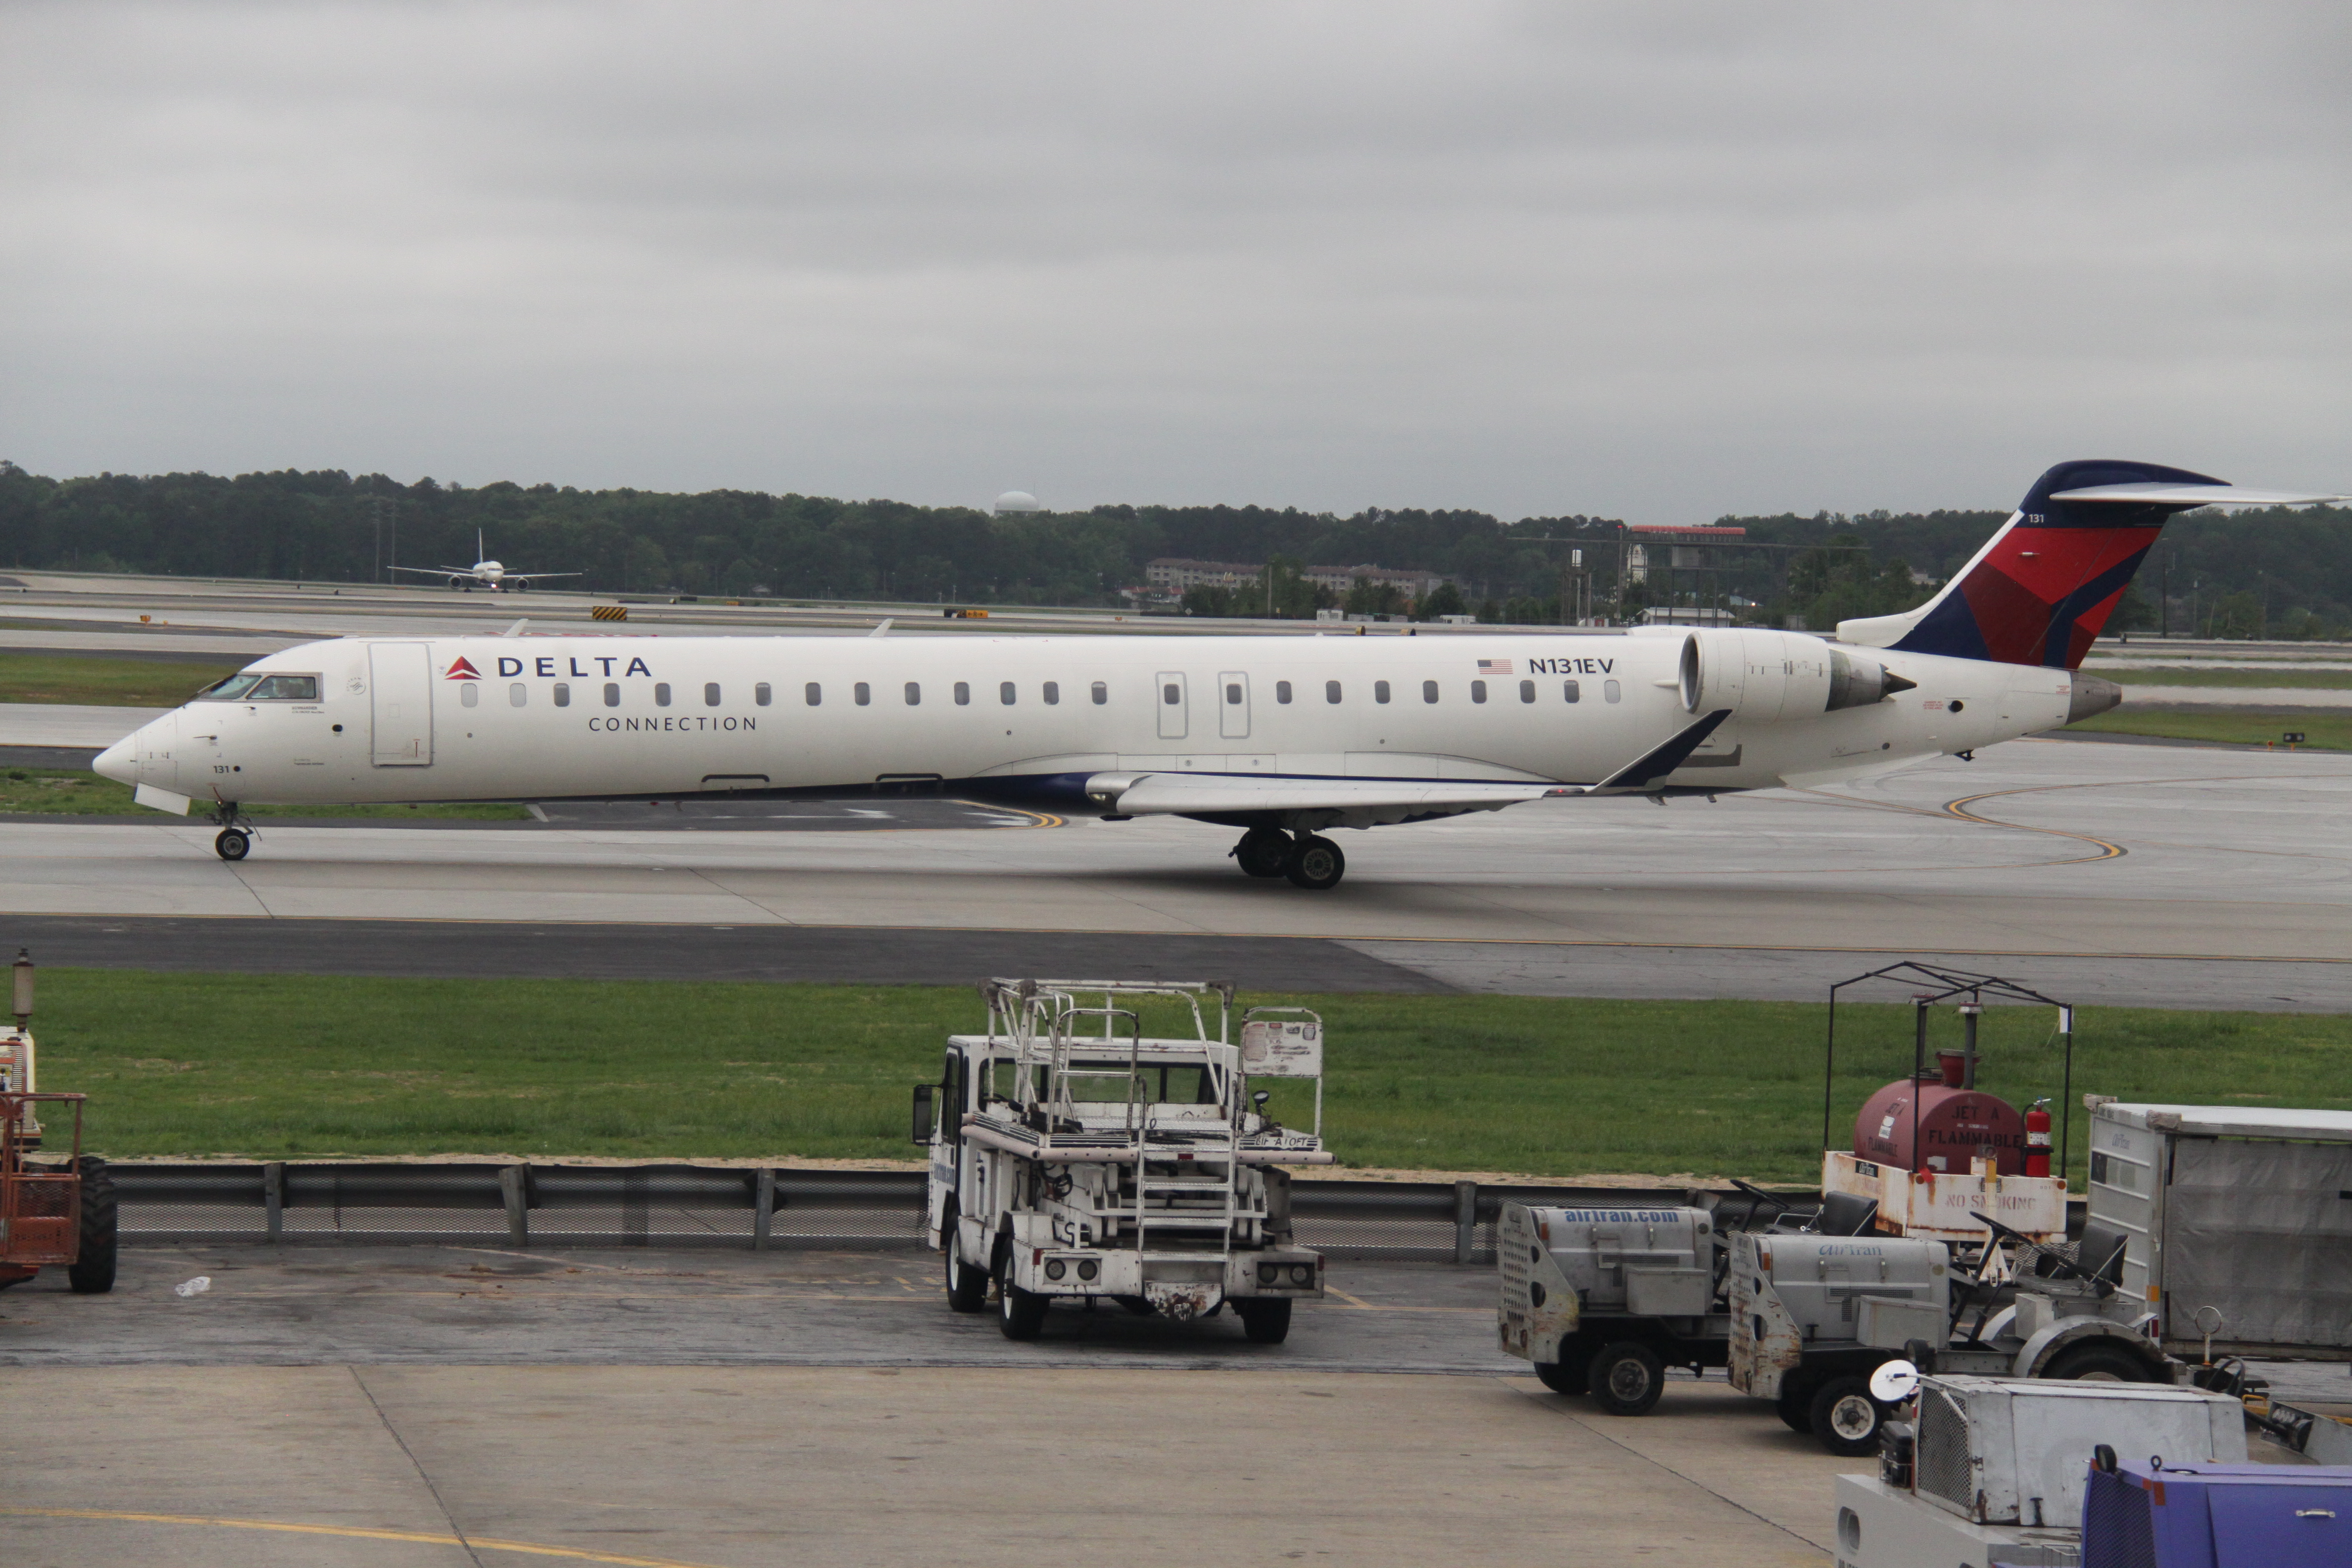 In A Move That Shifts 31 Aircraft From Another Delta Connection Partner To Endeavor The Minneapolis Based Regional Airline Will Expand Its Work And